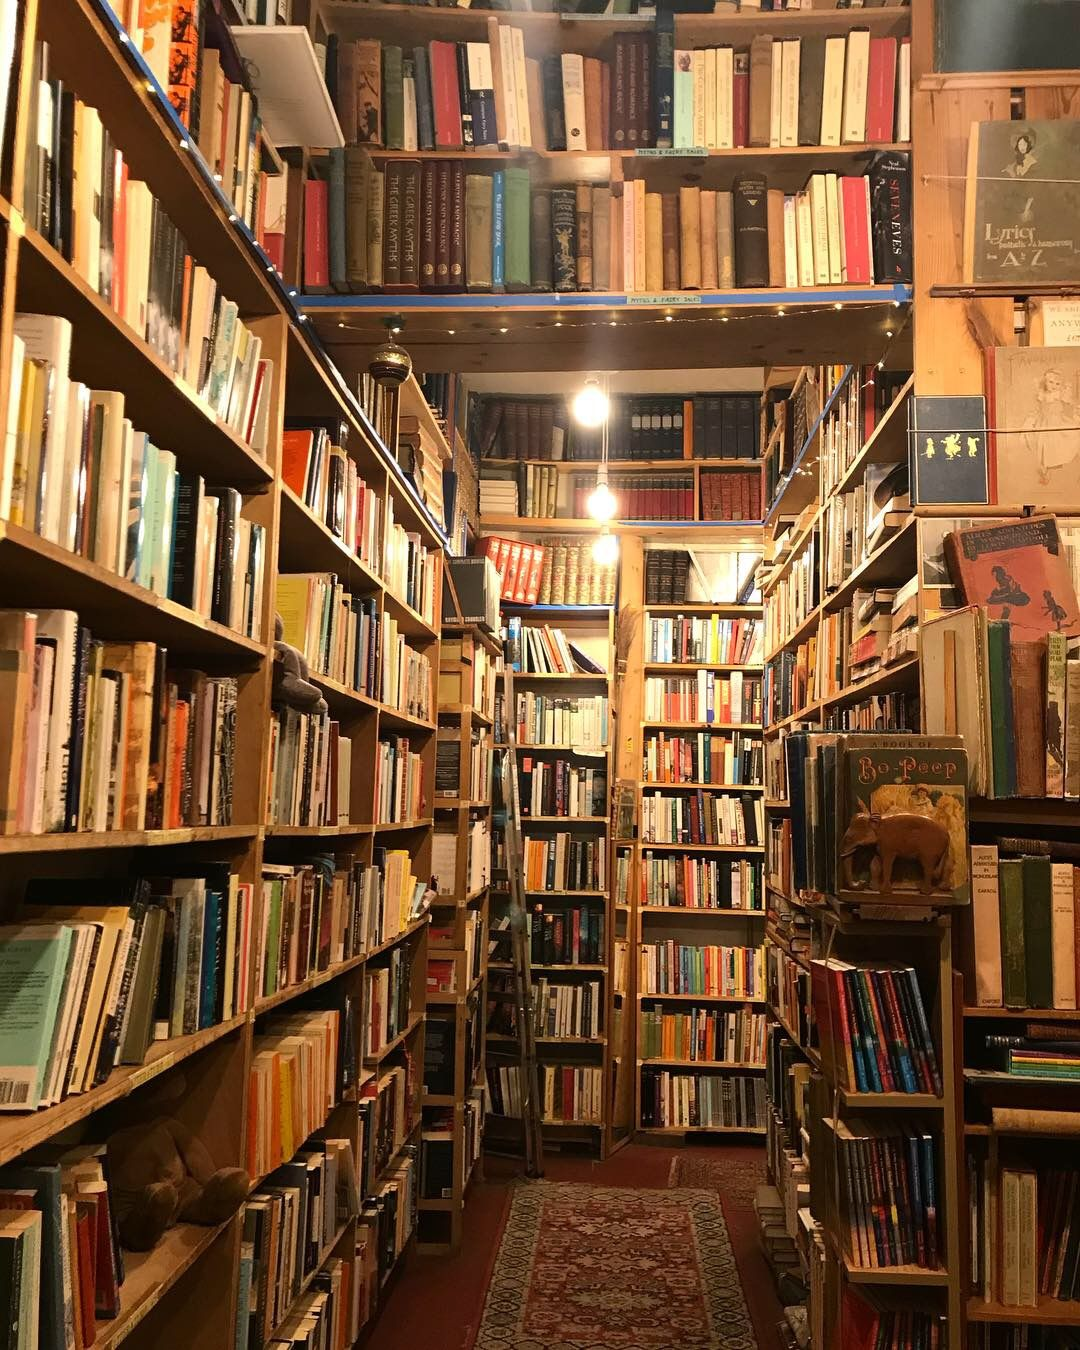 A Dreamy Second Hand Bookshop I Came Across Whilst Walking Around